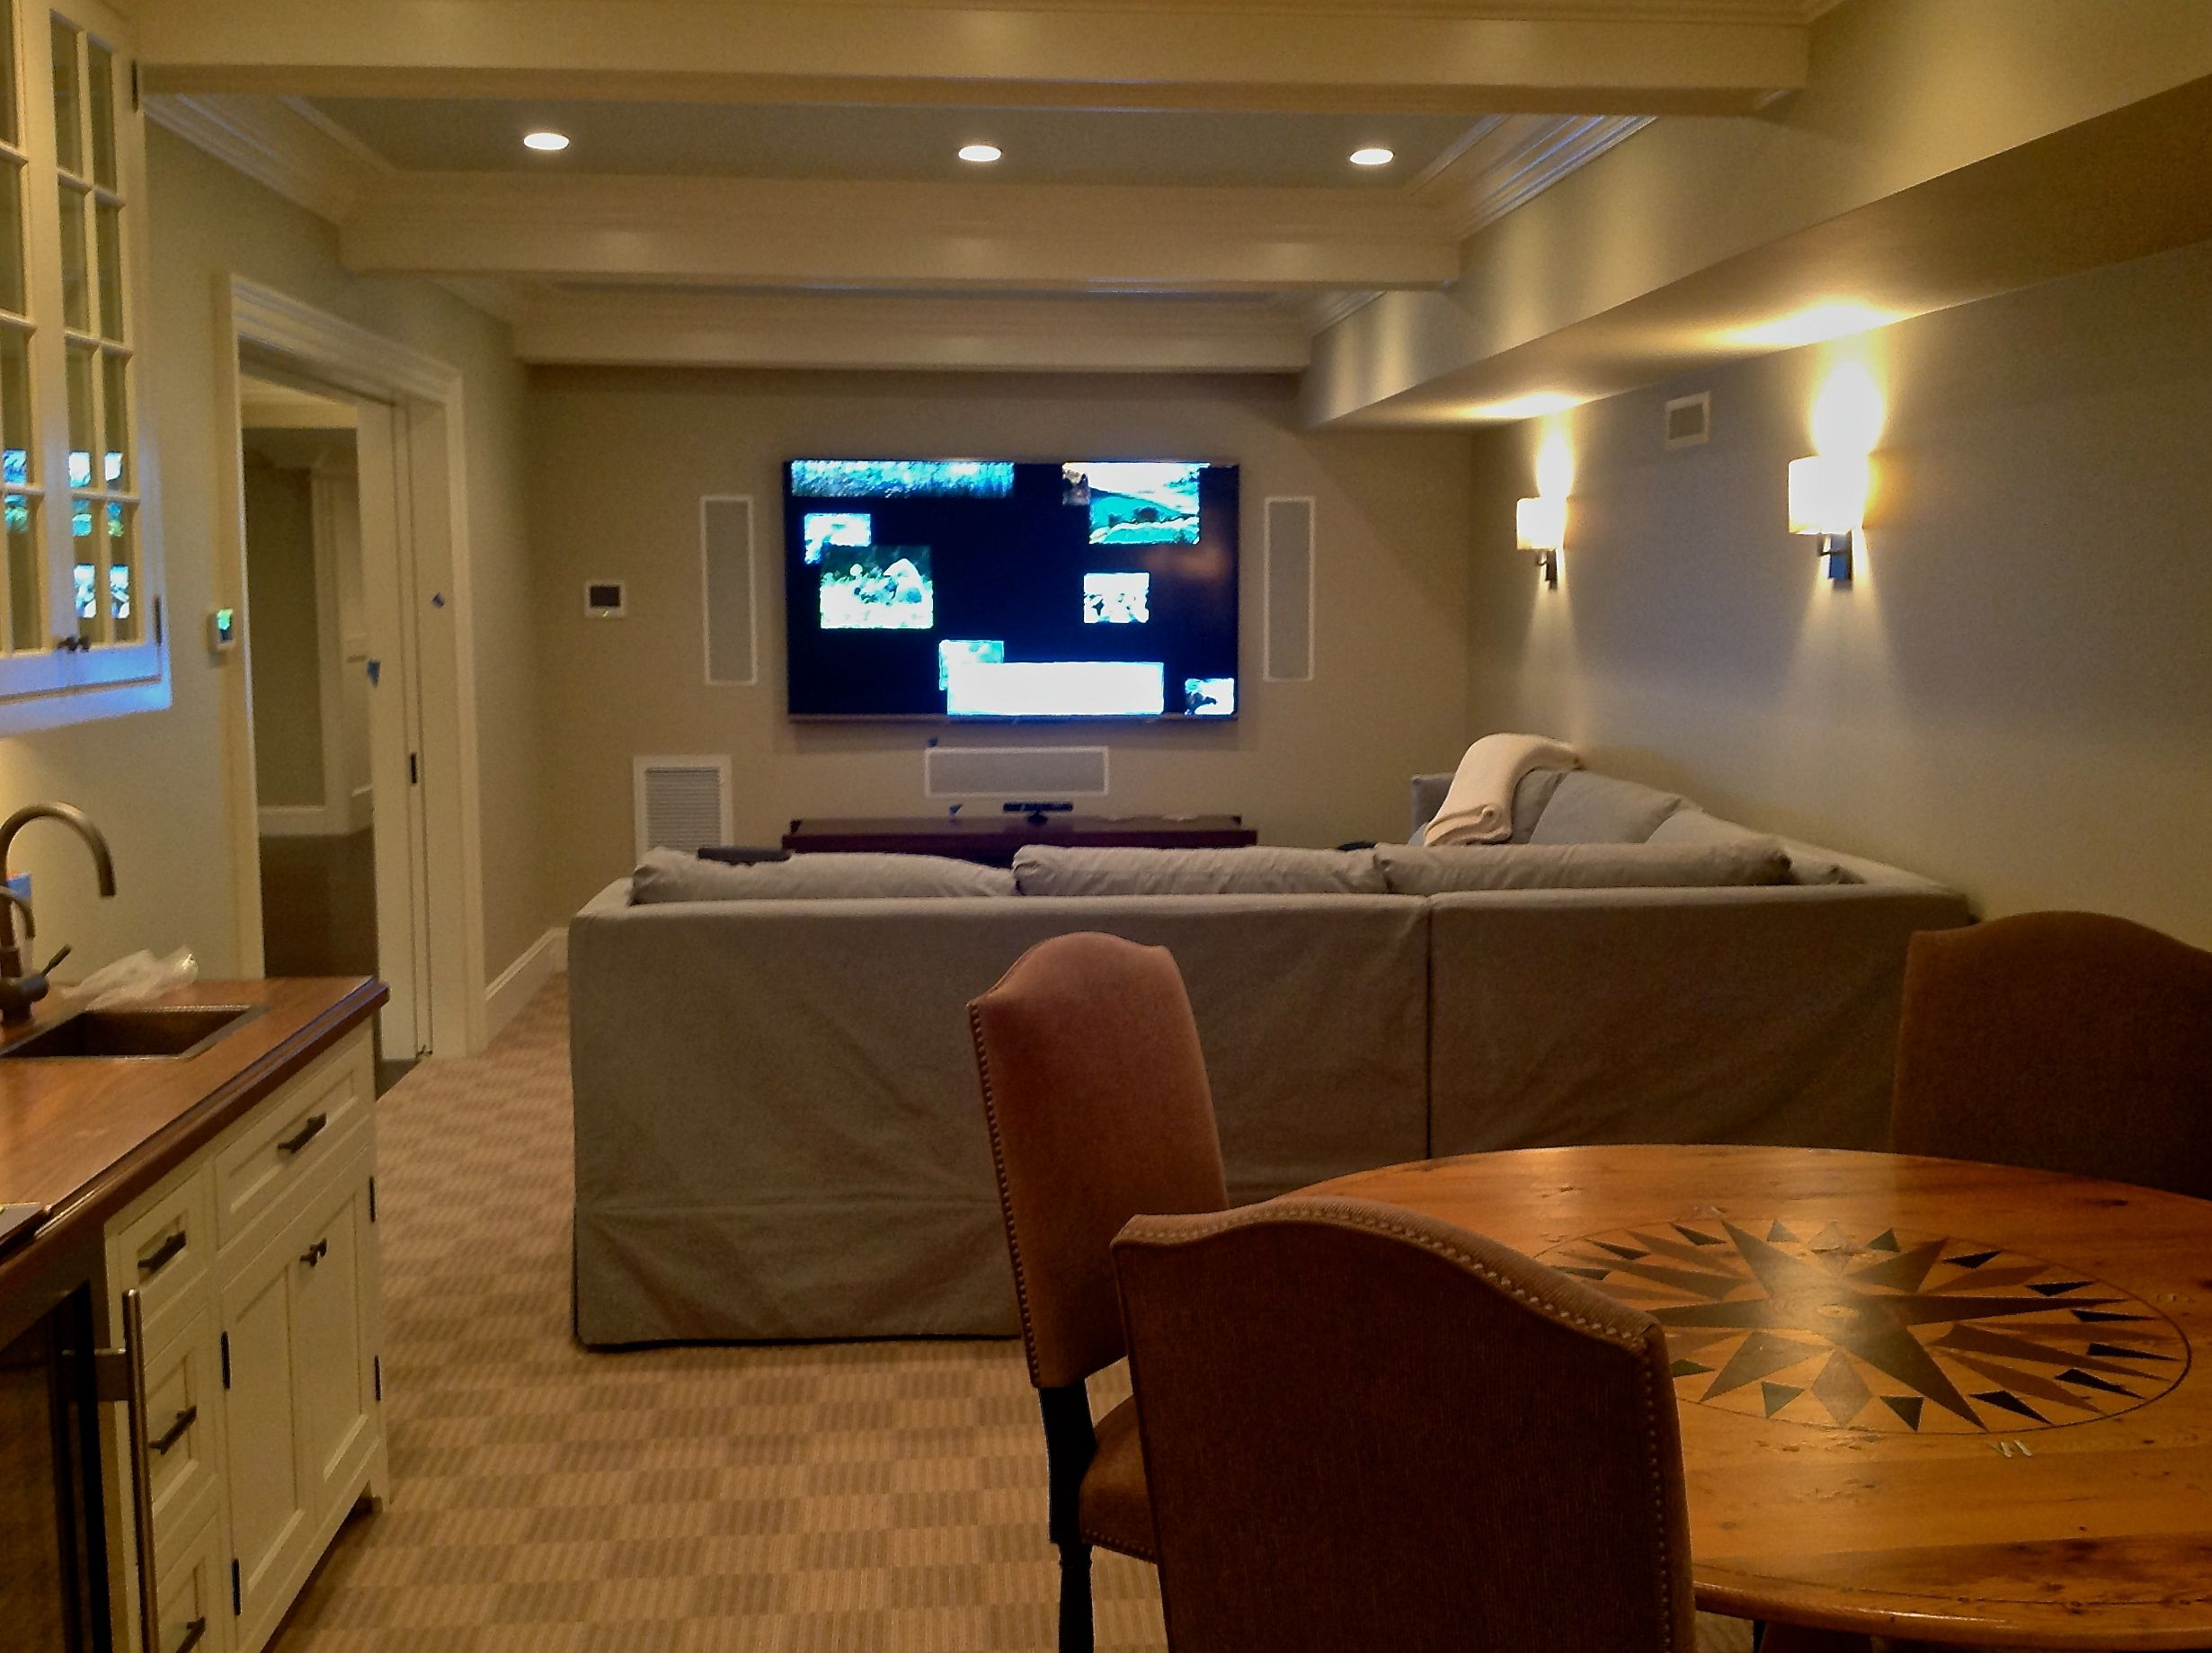 This Media Room Consist Of An 80 Sharp Display 5 1 Surround Sound System Sonos Audio Lutron Radio Ra2 Lighting Control And Hai Home Automation